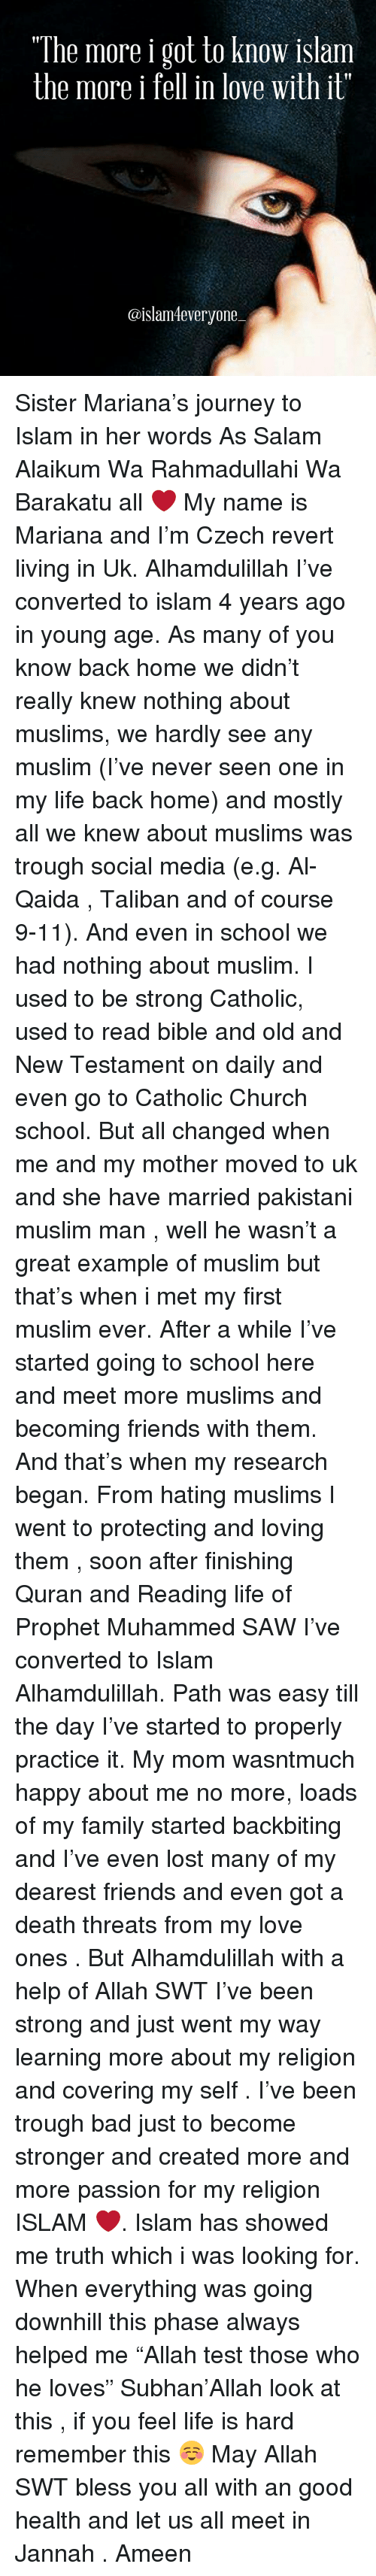 """trough: """"The more i got to know islam  the more i  fell in love with it""""  @islam 4everyone Sister Mariana's journey to Islam in her words As Salam Alaikum Wa Rahmadullahi Wa Barakatu all ❤️ My name is Mariana and I'm Czech revert living in Uk. Alhamdulillah I've converted to islam 4 years ago in young age. As many of you know back home we didn't really knew nothing about muslims, we hardly see any muslim (I've never seen one in my life back home) and mostly all we knew about muslims was trough social media (e.g. Al-Qaida , Taliban and of course 9-11). And even in school we had nothing about muslim. I used to be strong Catholic, used to read bible and old and New Testament on daily and even go to Catholic Church school. But all changed when me and my mother moved to uk and she have married pakistani muslim man , well he wasn't a great example of muslim but that's when i met my first muslim ever. After a while I've started going to school here and meet more muslims and becoming friends with them. And that's when my research began. From hating muslims I went to protecting and loving them , soon after finishing Quran and Reading life of Prophet Muhammed SAW I've converted to Islam Alhamdulillah. Path was easy till the day I've started to properly practice it. My mom wasntmuch happy about me no more, loads of my family started backbiting and I've even lost many of my dearest friends and even got a death threats from my love ones . But Alhamdulillah with a help of Allah SWT I've been strong and just went my way learning more about my religion and covering my self . I've been trough bad just to become stronger and created more and more passion for my religion ISLAM ❤️. Islam has showed me truth which i was looking for. When everything was going downhill this phase always helped me """"Allah test those who he loves"""" Subhan'Allah look at this , if you feel life is hard remember this ☺️ May Allah SWT bless you all with an good health and let us all meet in Jannah . Ameen"""